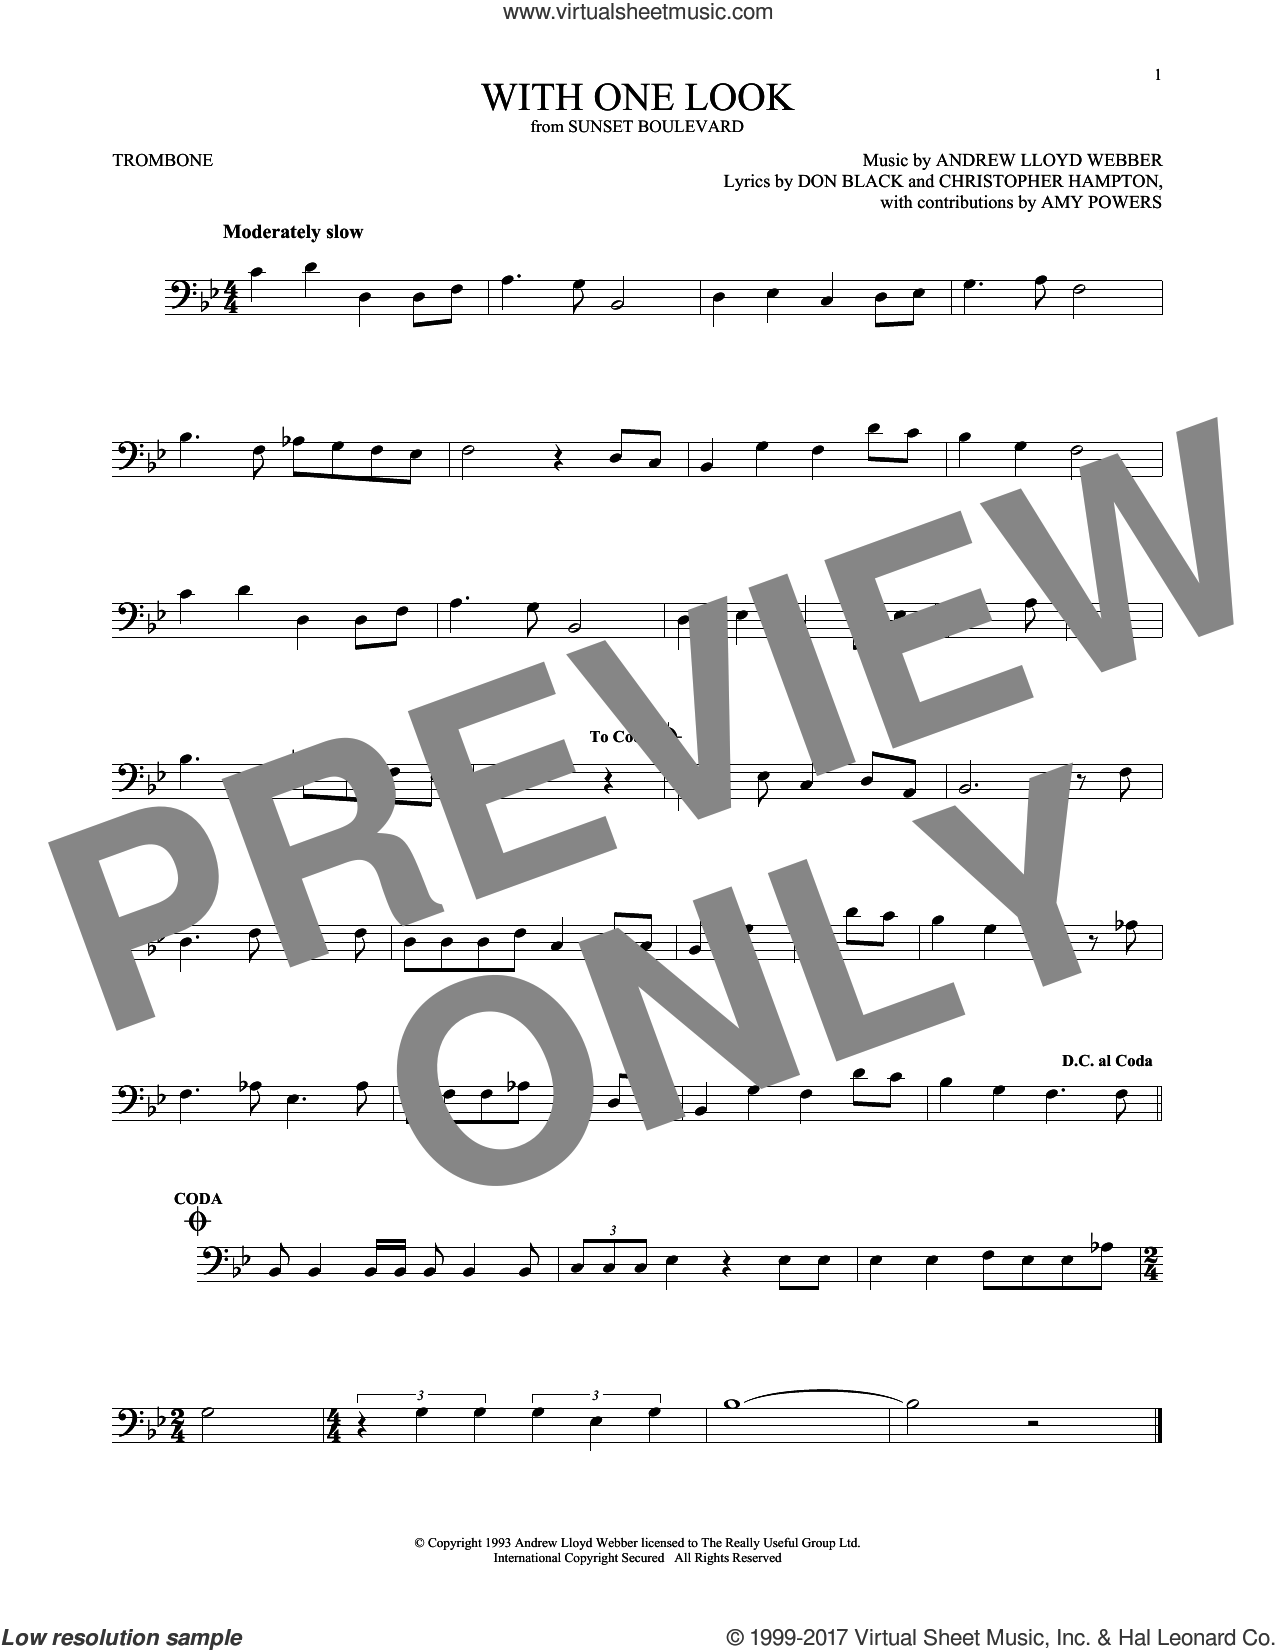 With One Look sheet music for trombone solo by Andrew Lloyd Webber, Christopher Hampton and Don Black, intermediate skill level